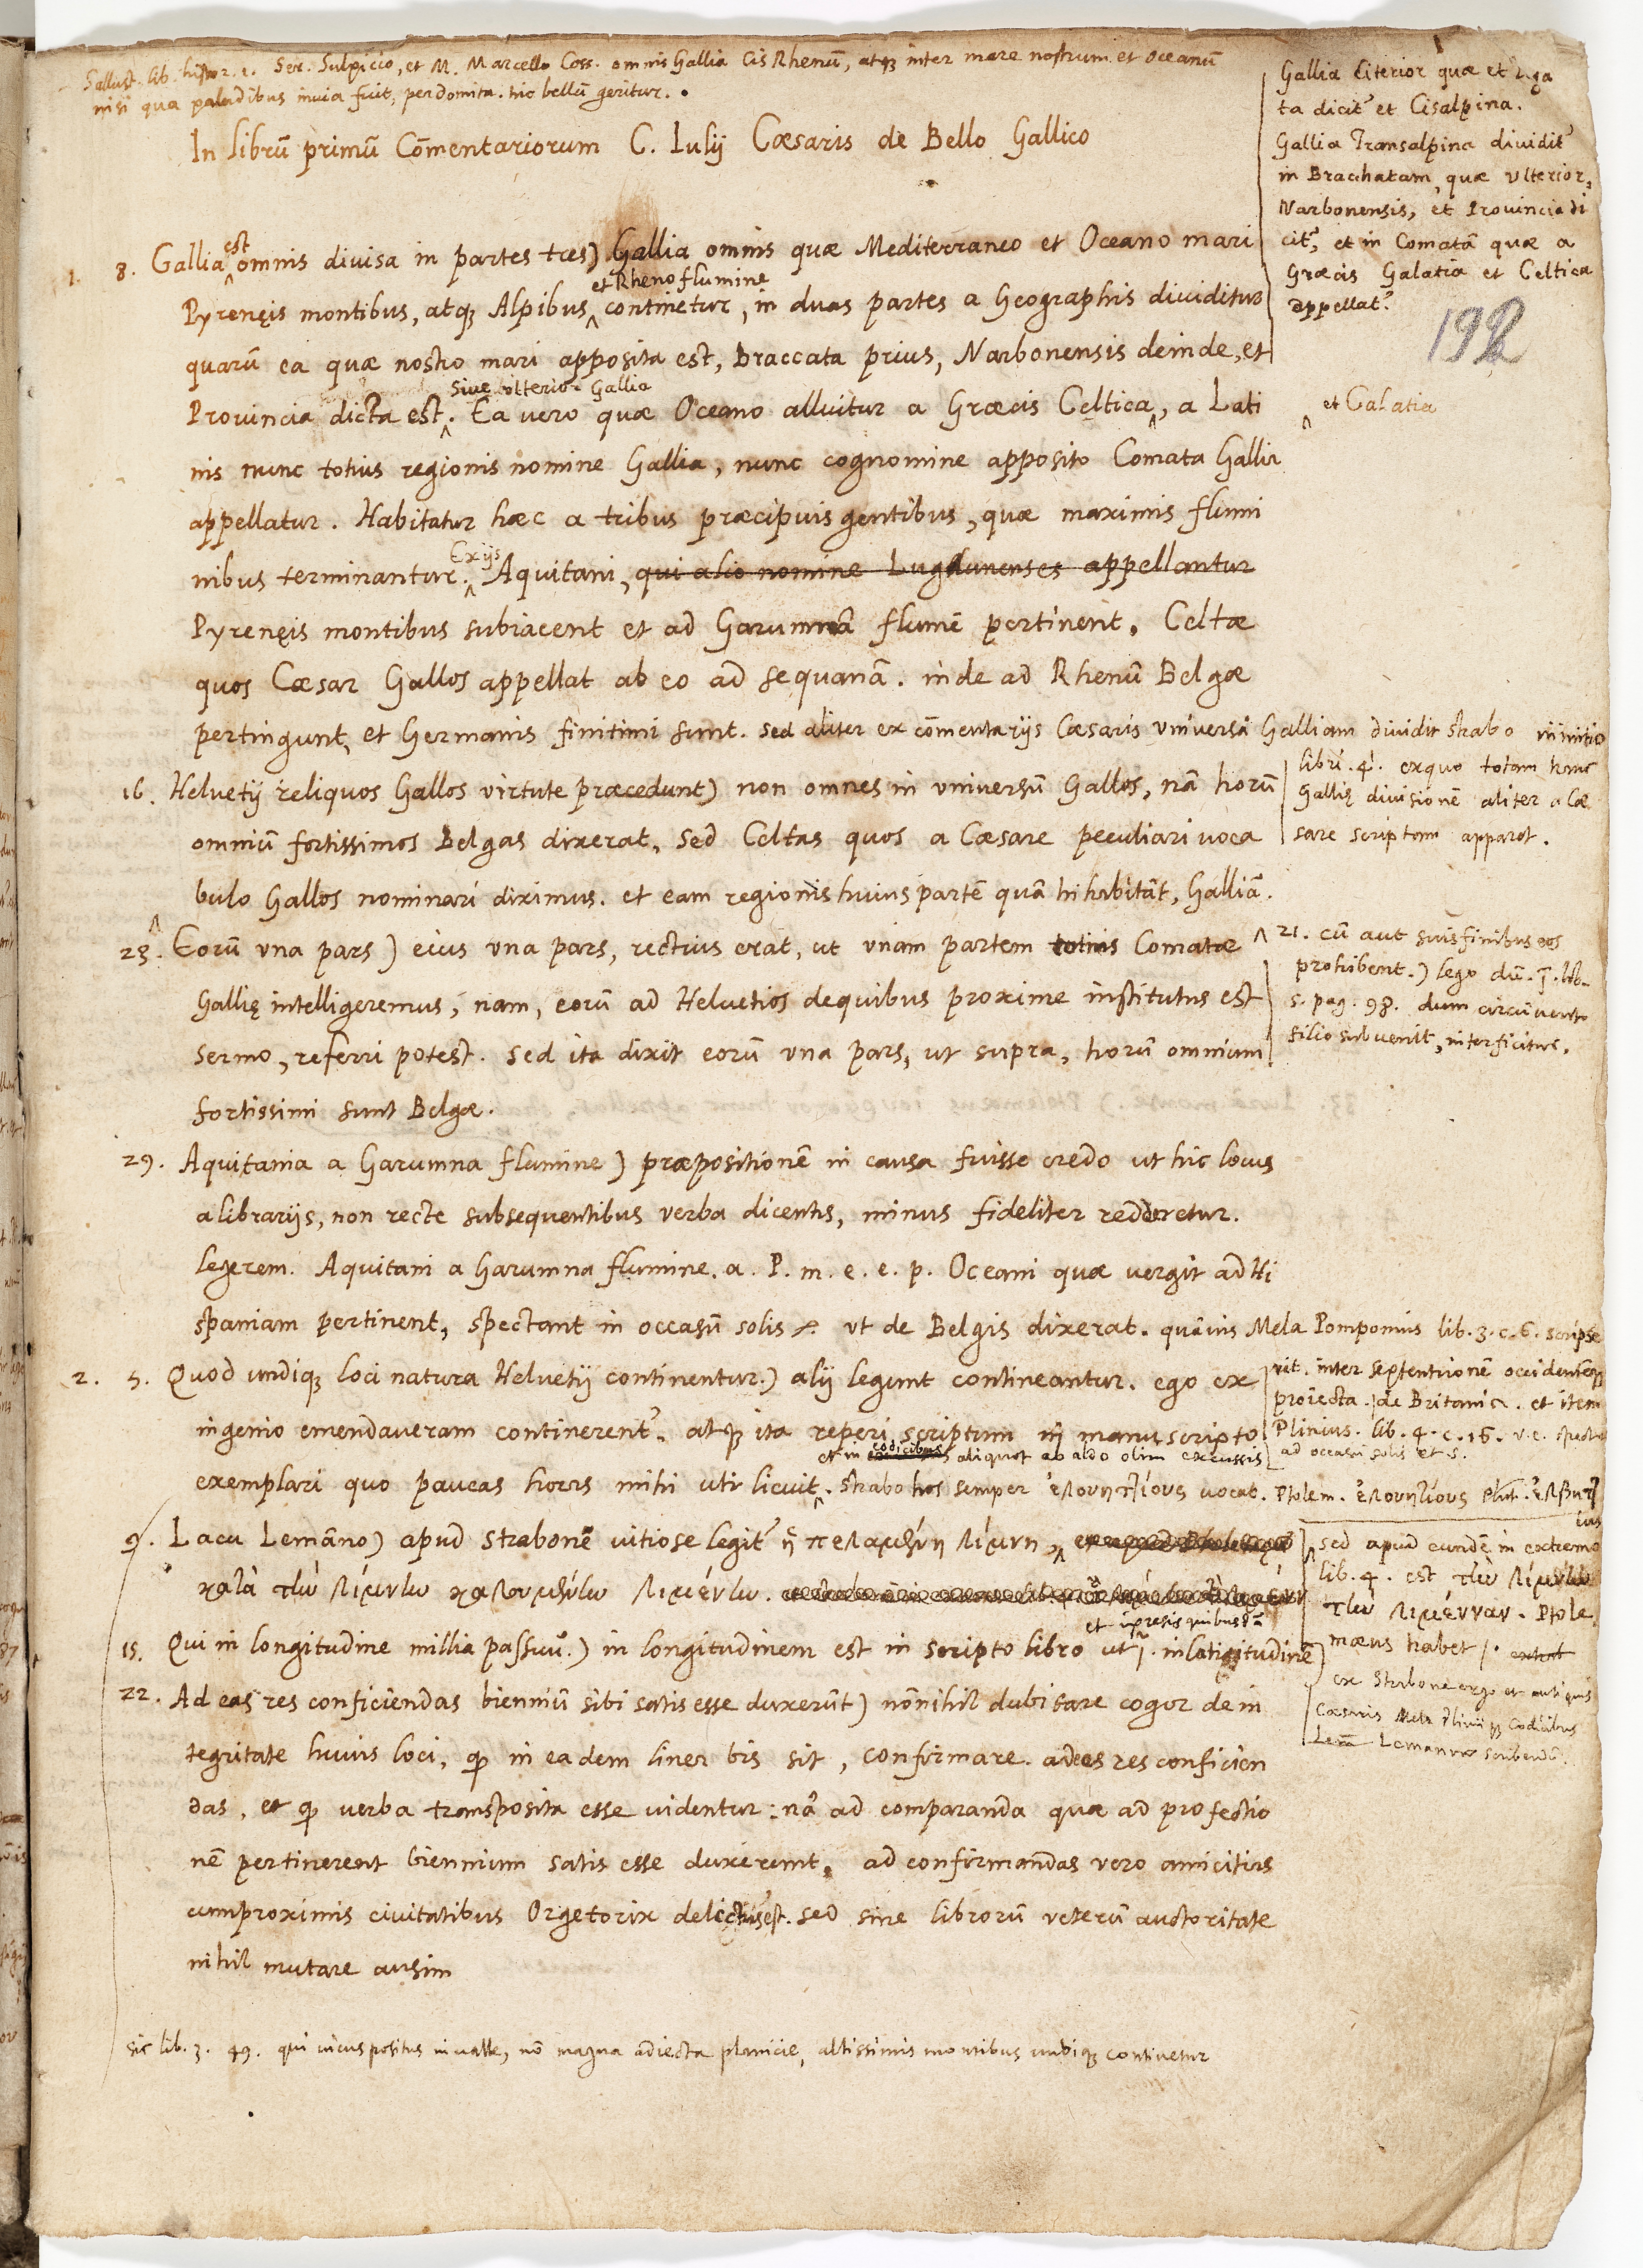 AM 828 4to, f. 192r